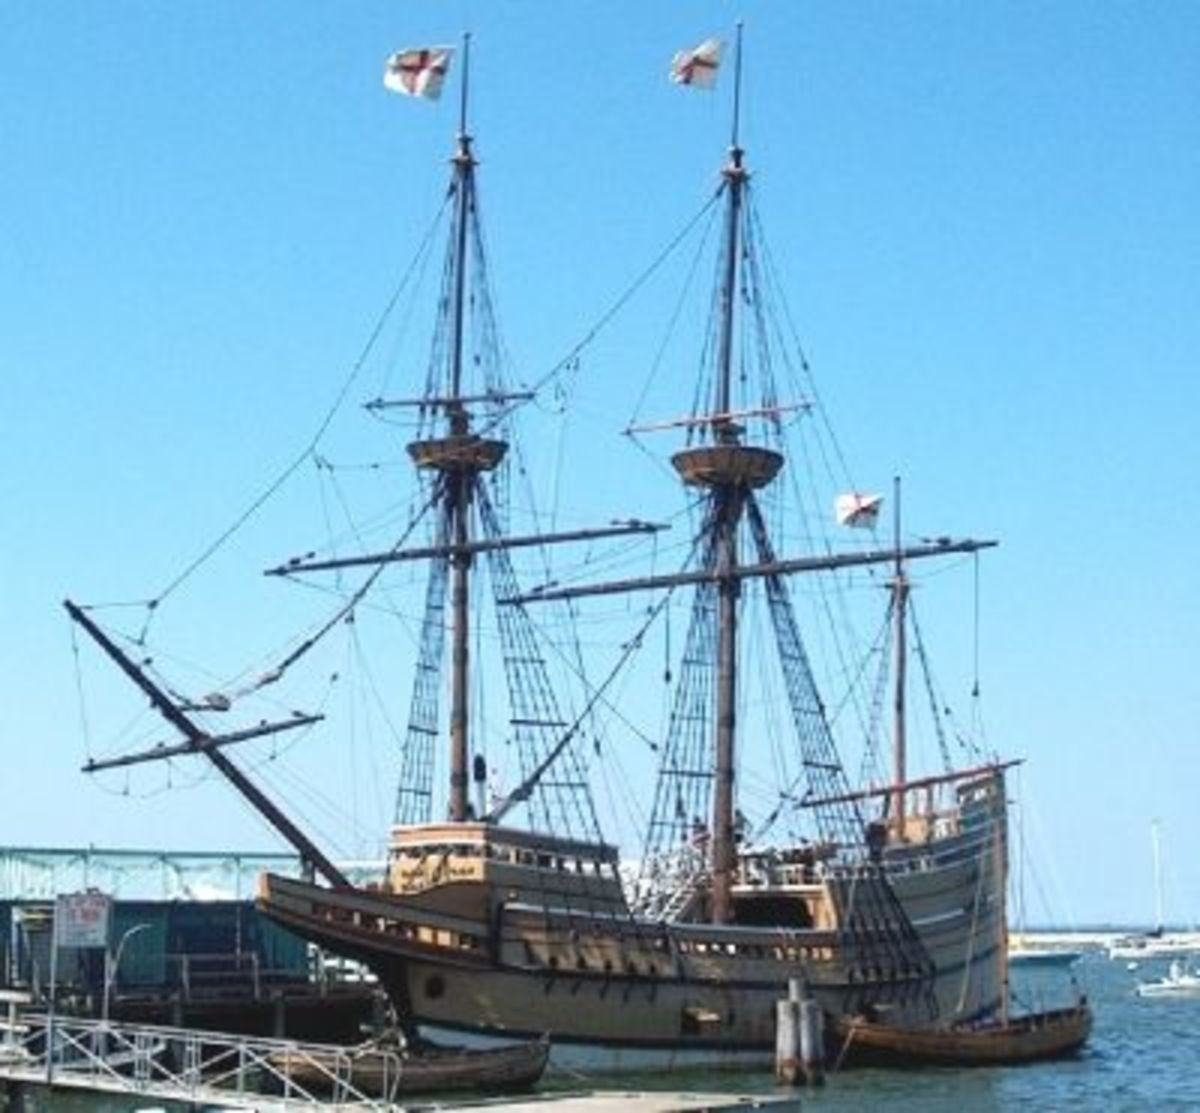 The Mayflower II in Plymouth Harbor, Massachusetts